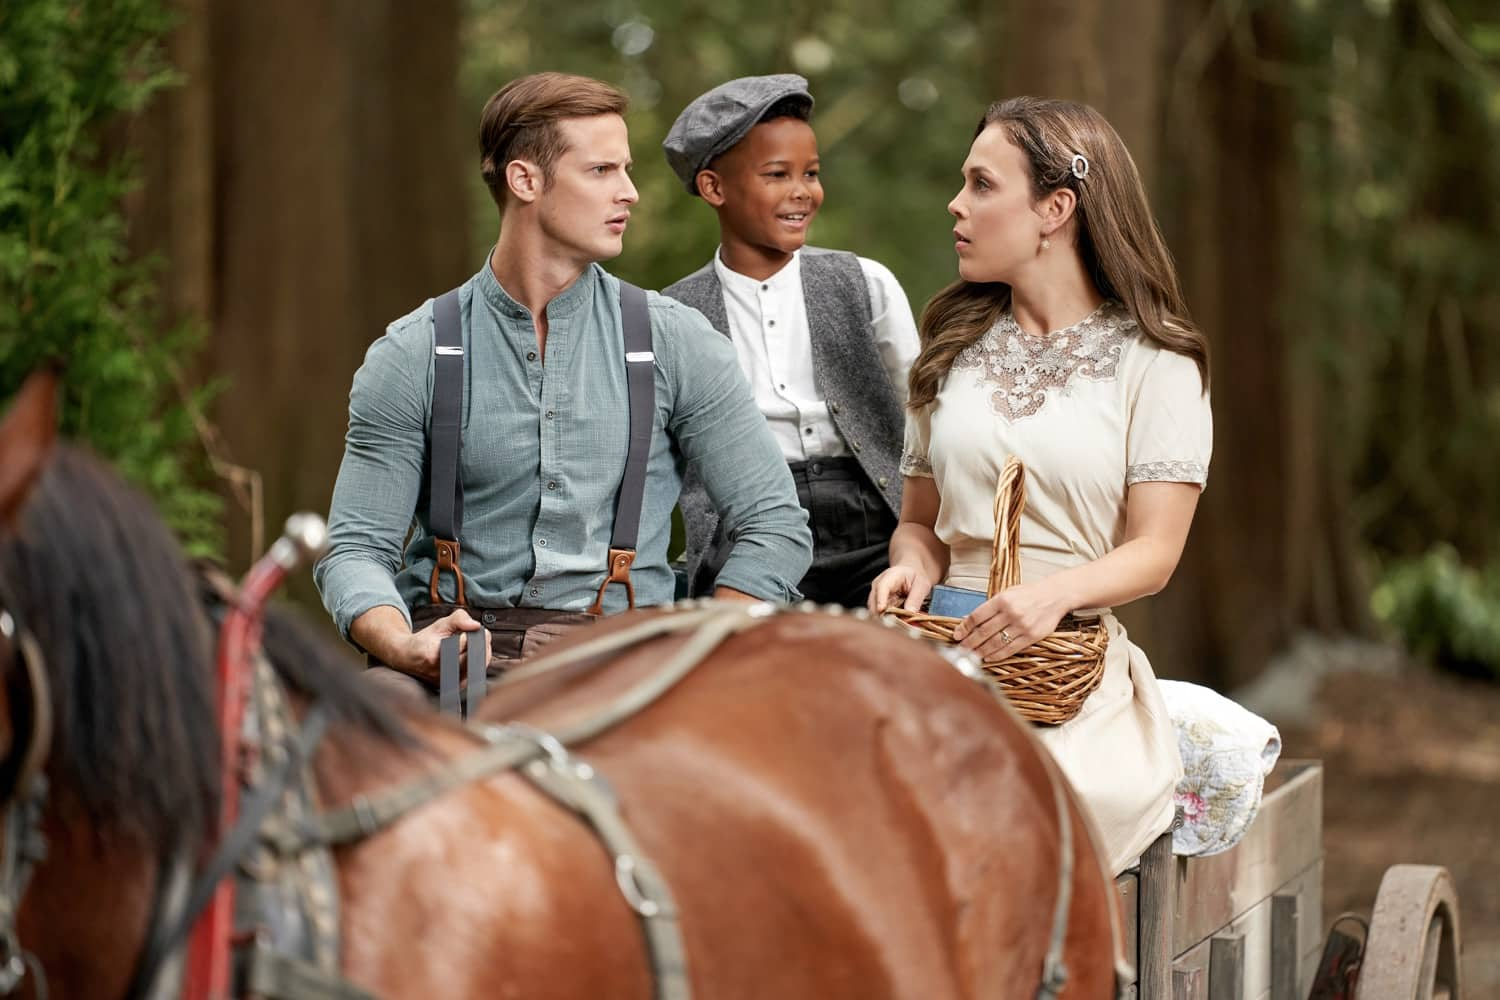 When Calls The Heart Season 8 Episode 4 The inquiry begins, and Nathan starts to question his own actions. Meanwhile, the Canfields, a new family in town, buy Gowen's cabin and Elizabeth welcomes them. Lee's sister and niece arrive in Hope Valley.   Photo: Aren Buchholz, Elias Leacock, Erin Krakow